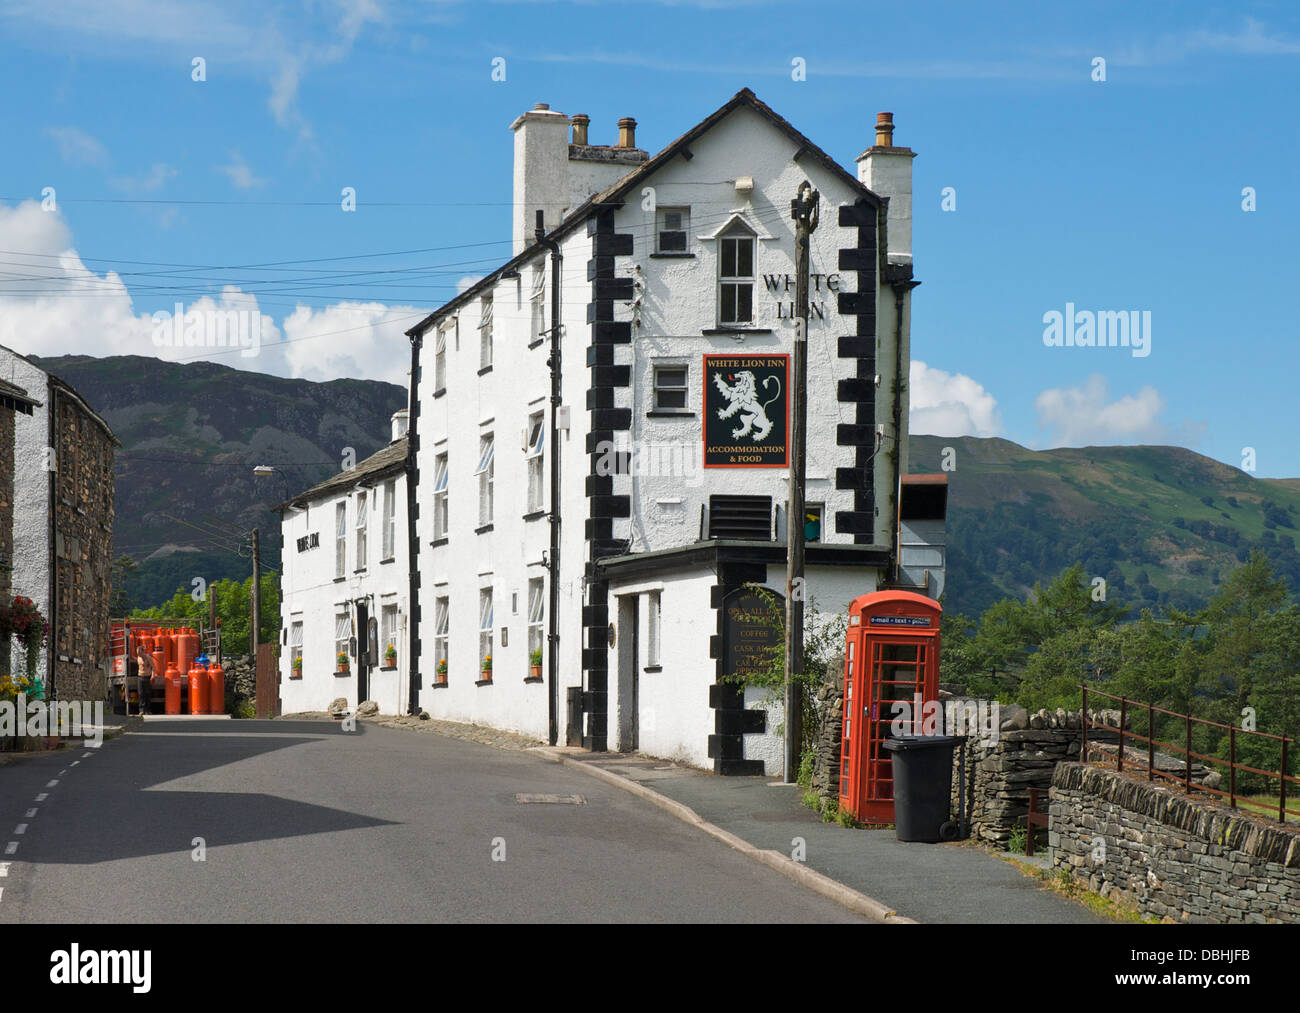 Man delivering Calor Gas bottles to the White Lion Inn, Patterdale, Lake District National Park, Cumbria, England - Stock Image